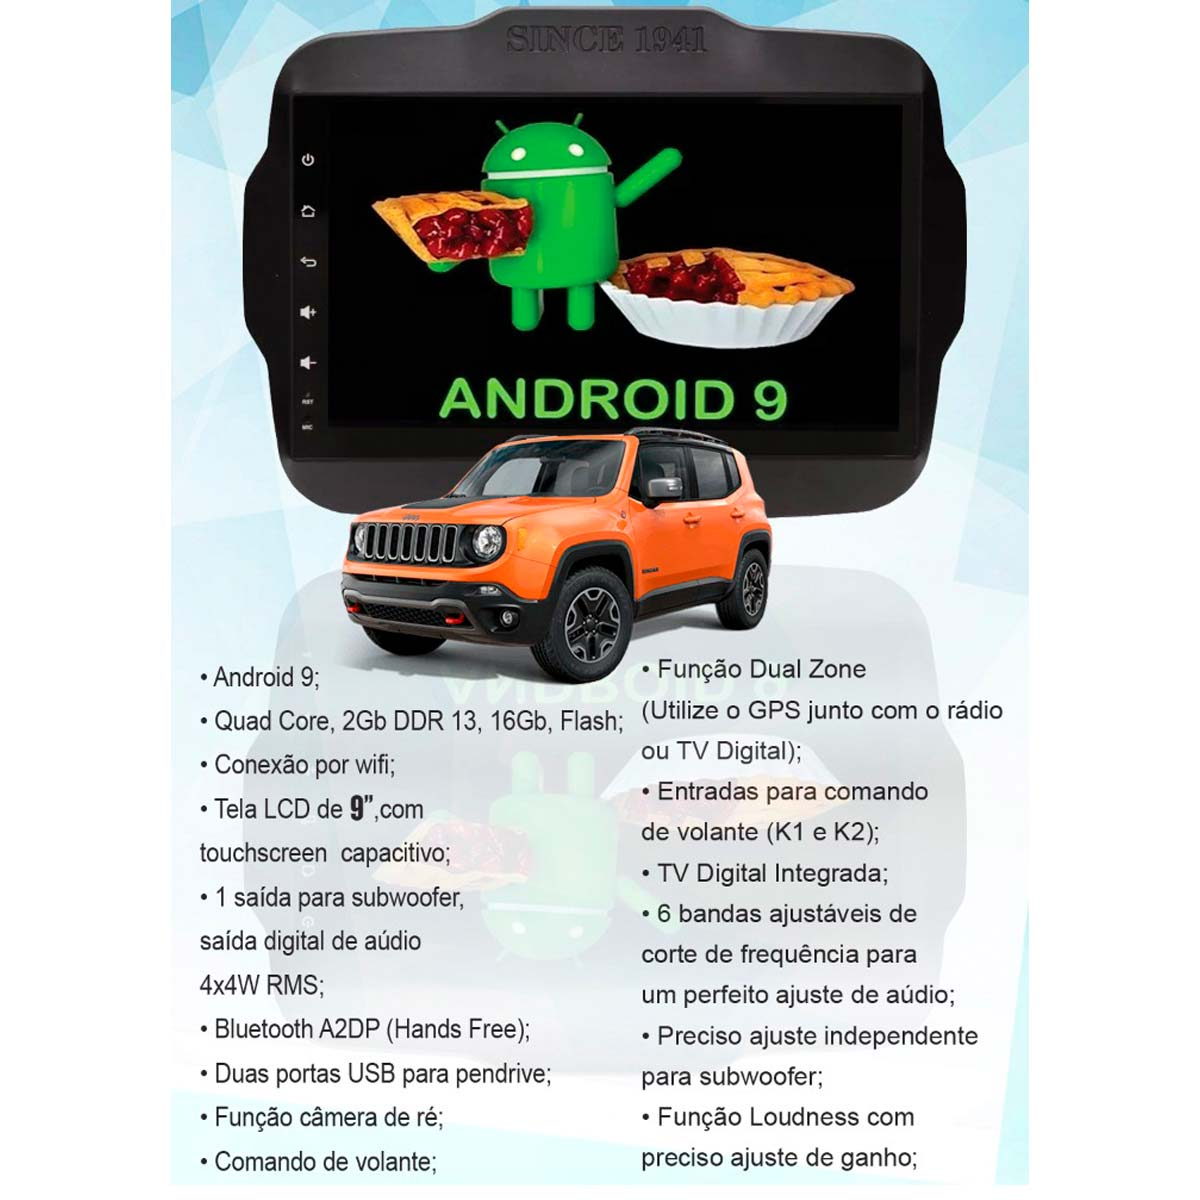 "Central multimídia Jeep Renegade Android tela de 9"" GPS, TV Digital, wifi e espelhamento"